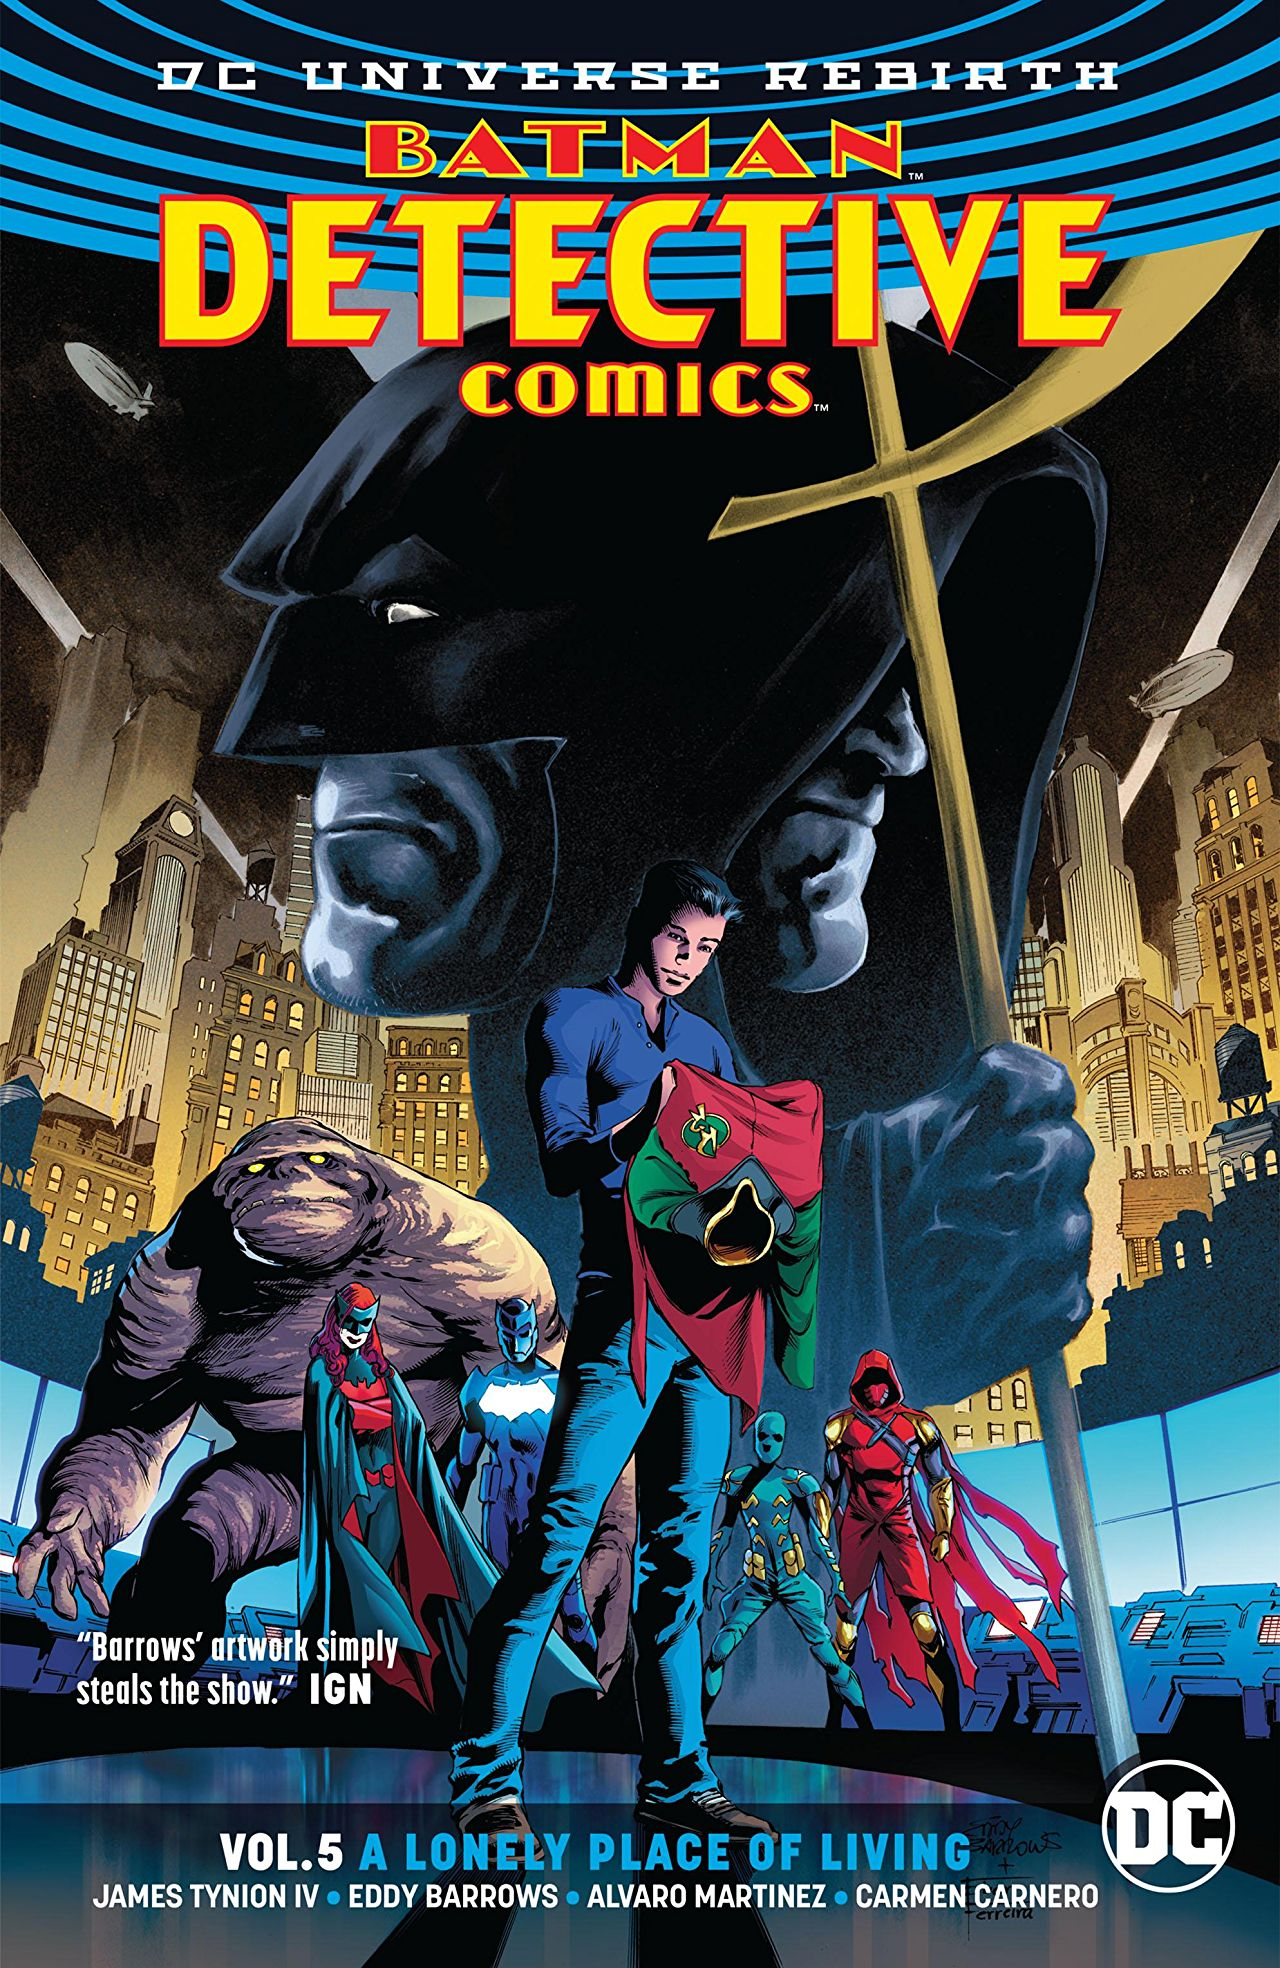 Detective Comics Vol  5: A Lonely Place of Living' is a stunning